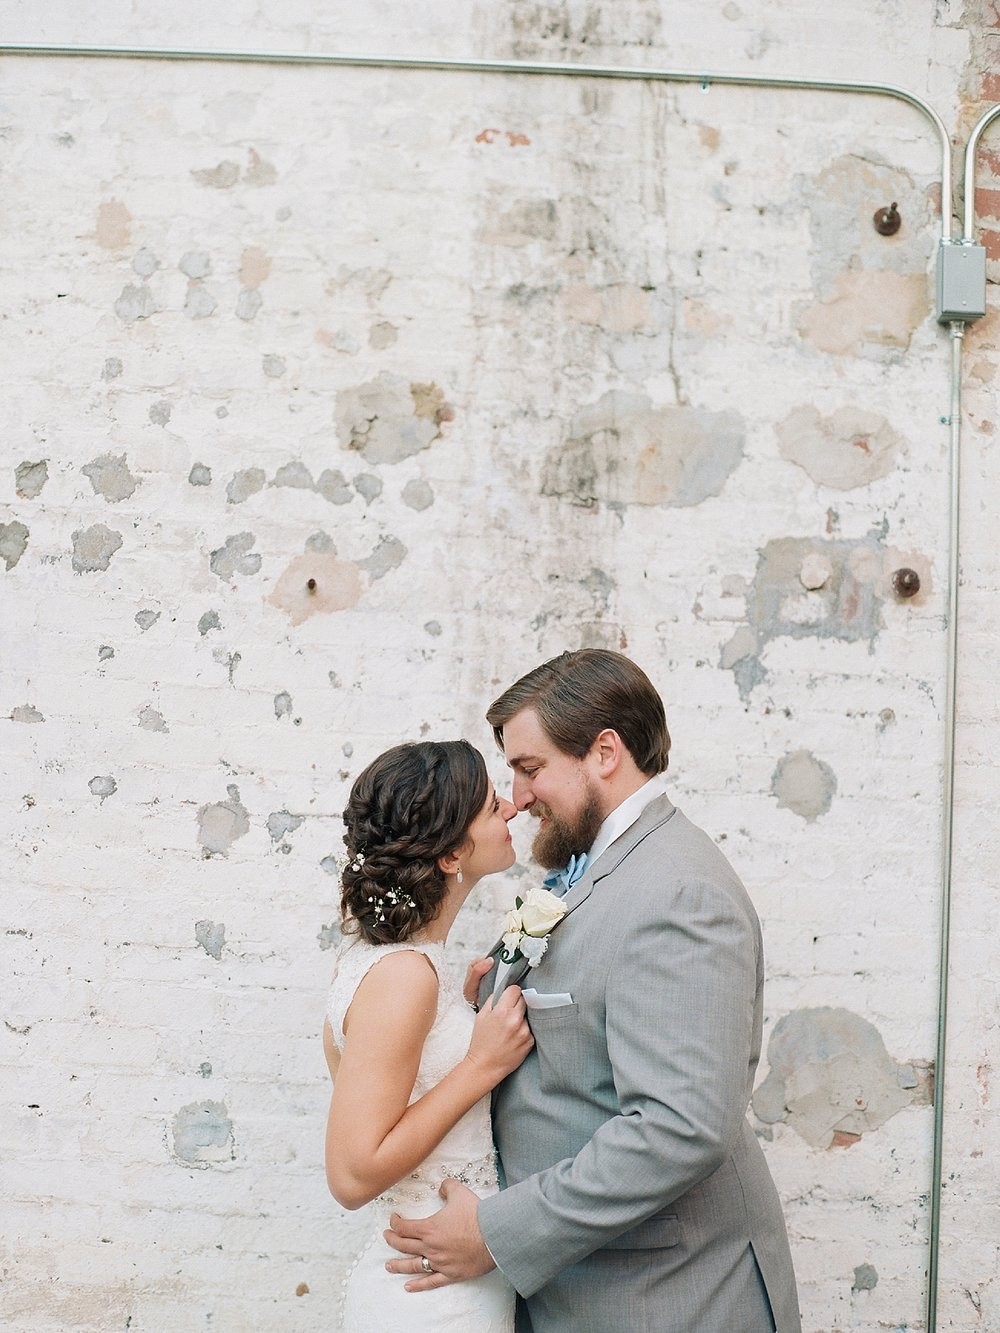 The Engine Room Atlanta Wedding Photographer Christina Pugh 43.jpg